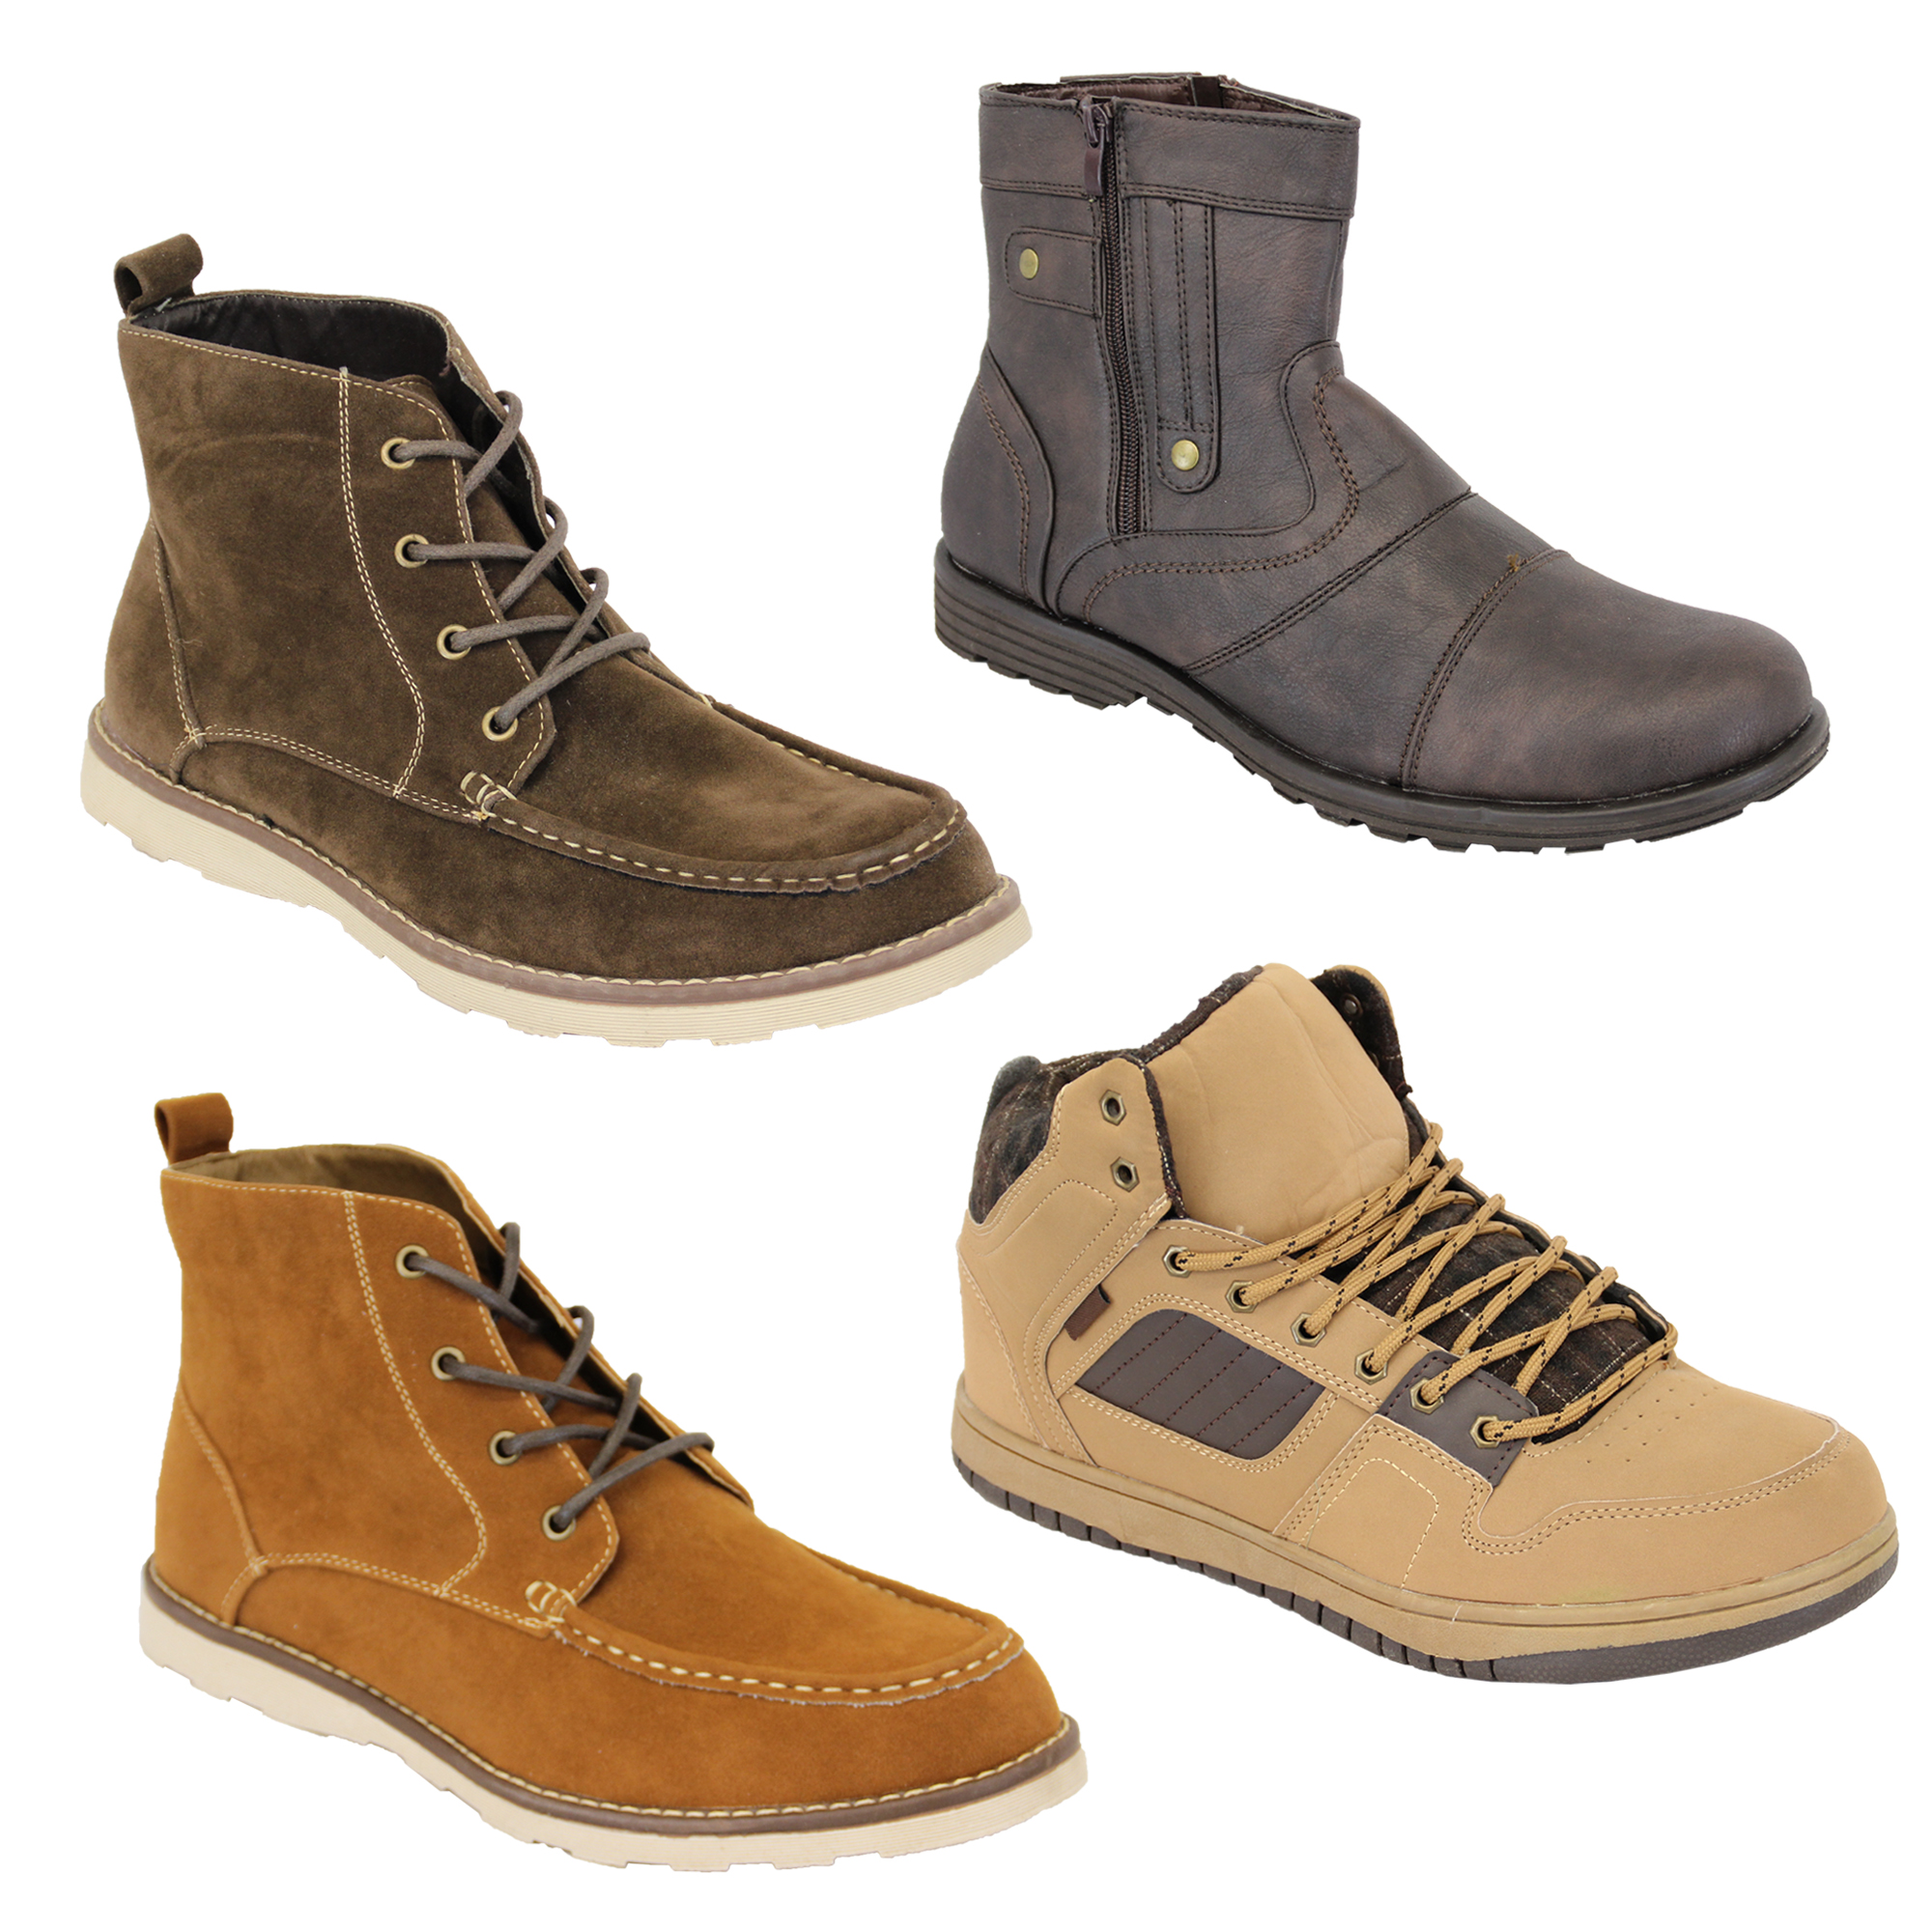 mens boots high ankle top suede look chukka desert shoes